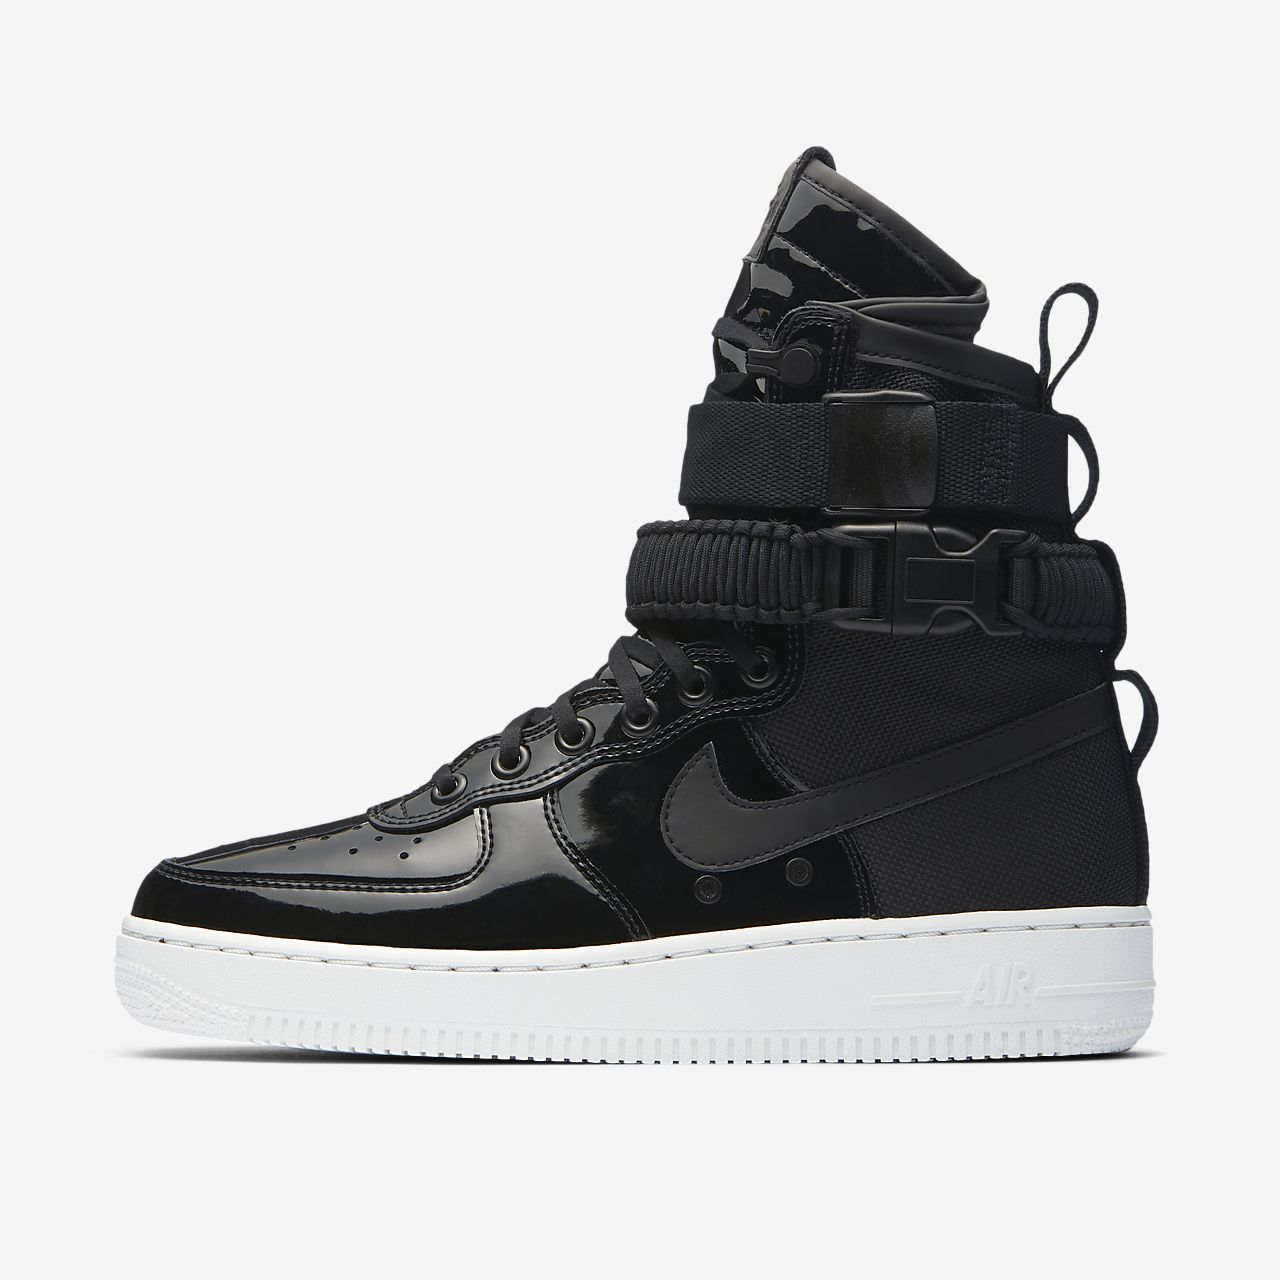 buy online 021a3 bef76 Nike SF Air Force 1 SE Premium Womens Shoe